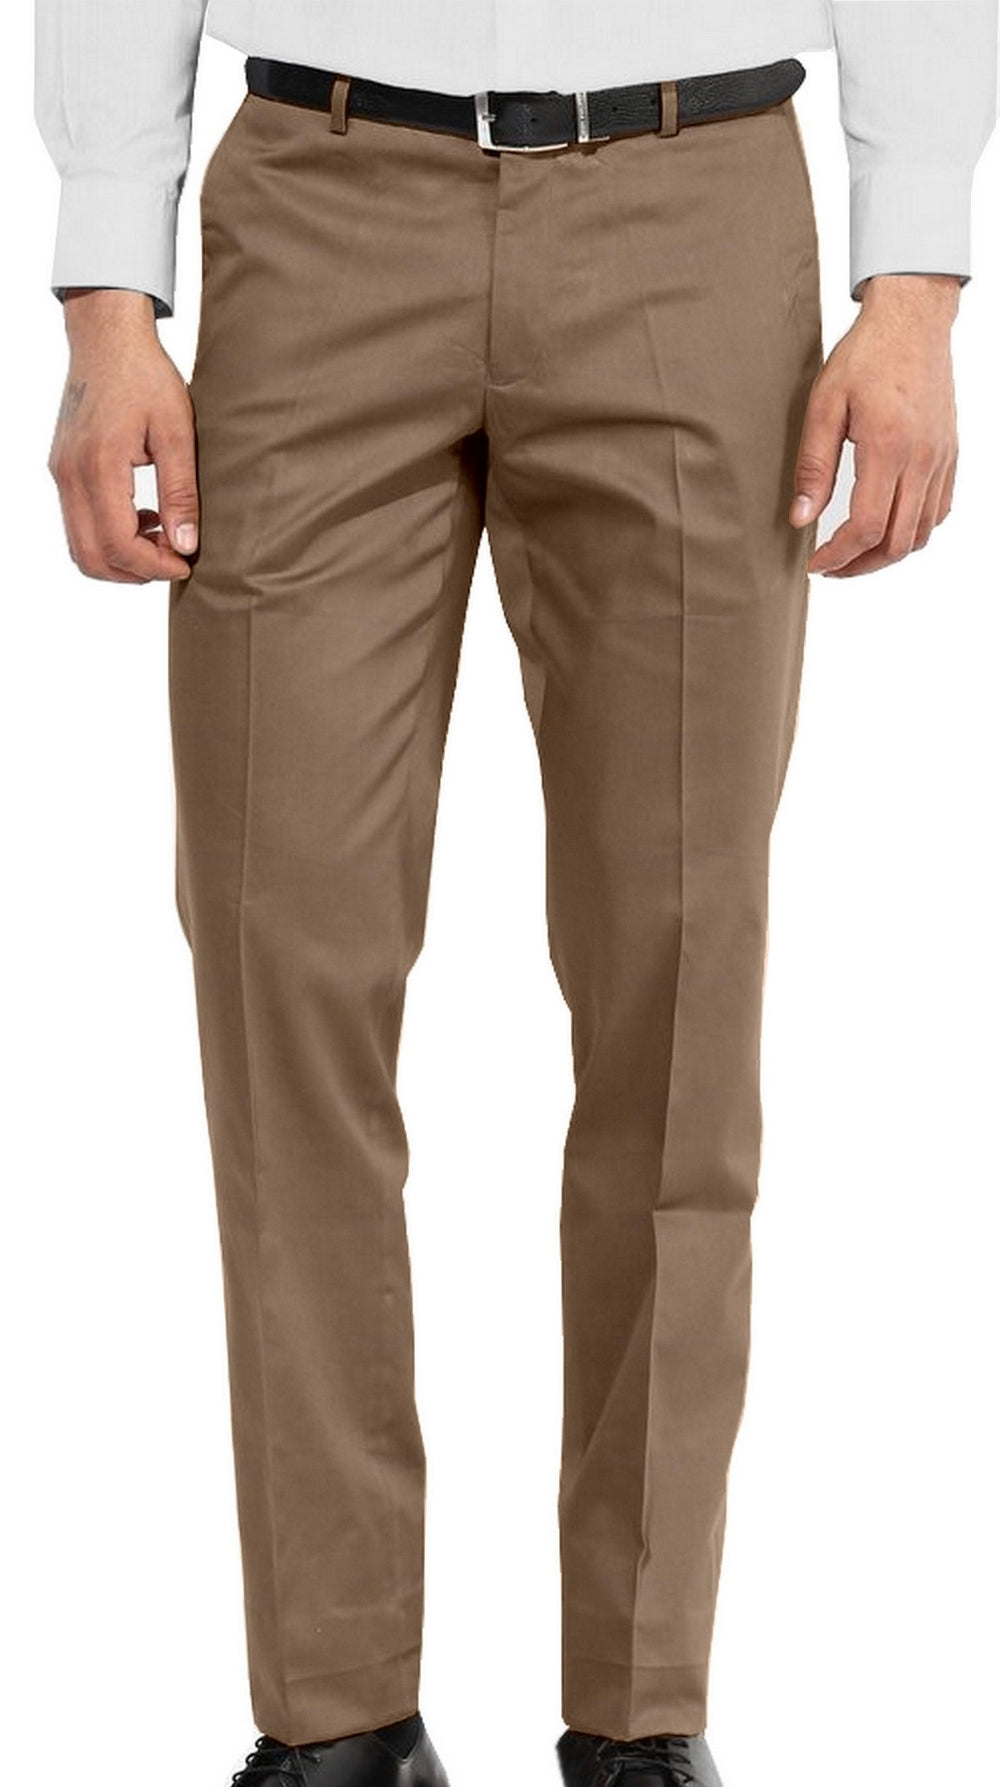 Sand Brown Washed Chino